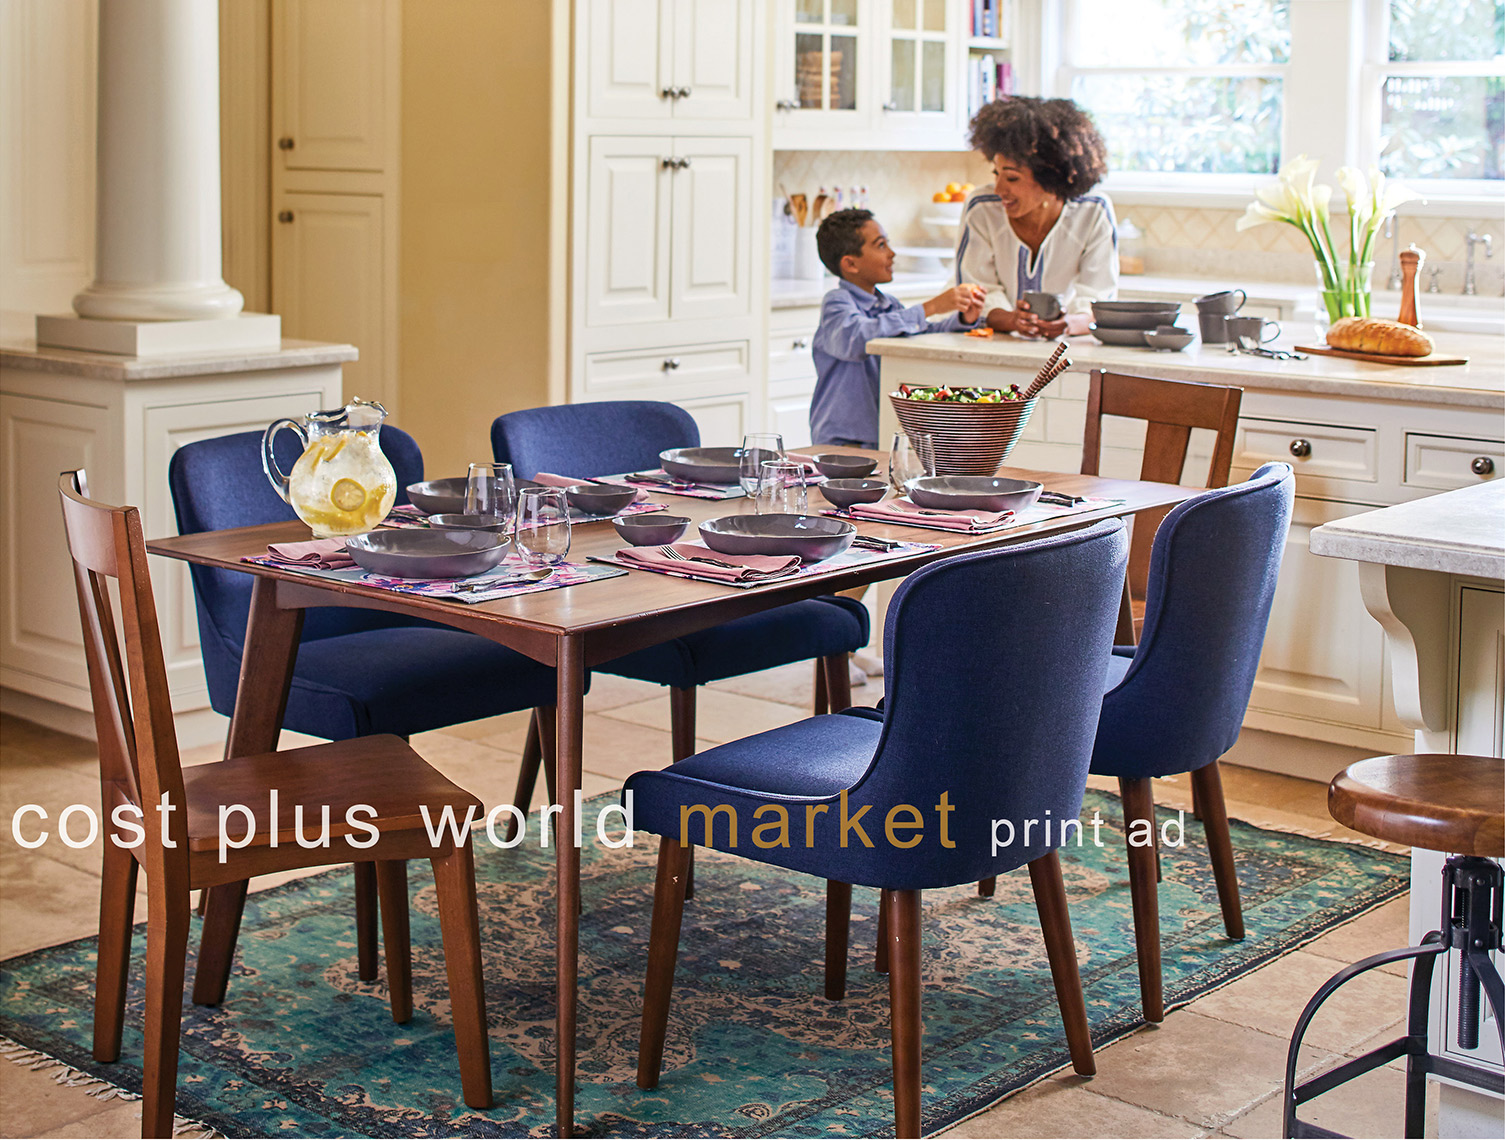 Dining Table with Mom and Child